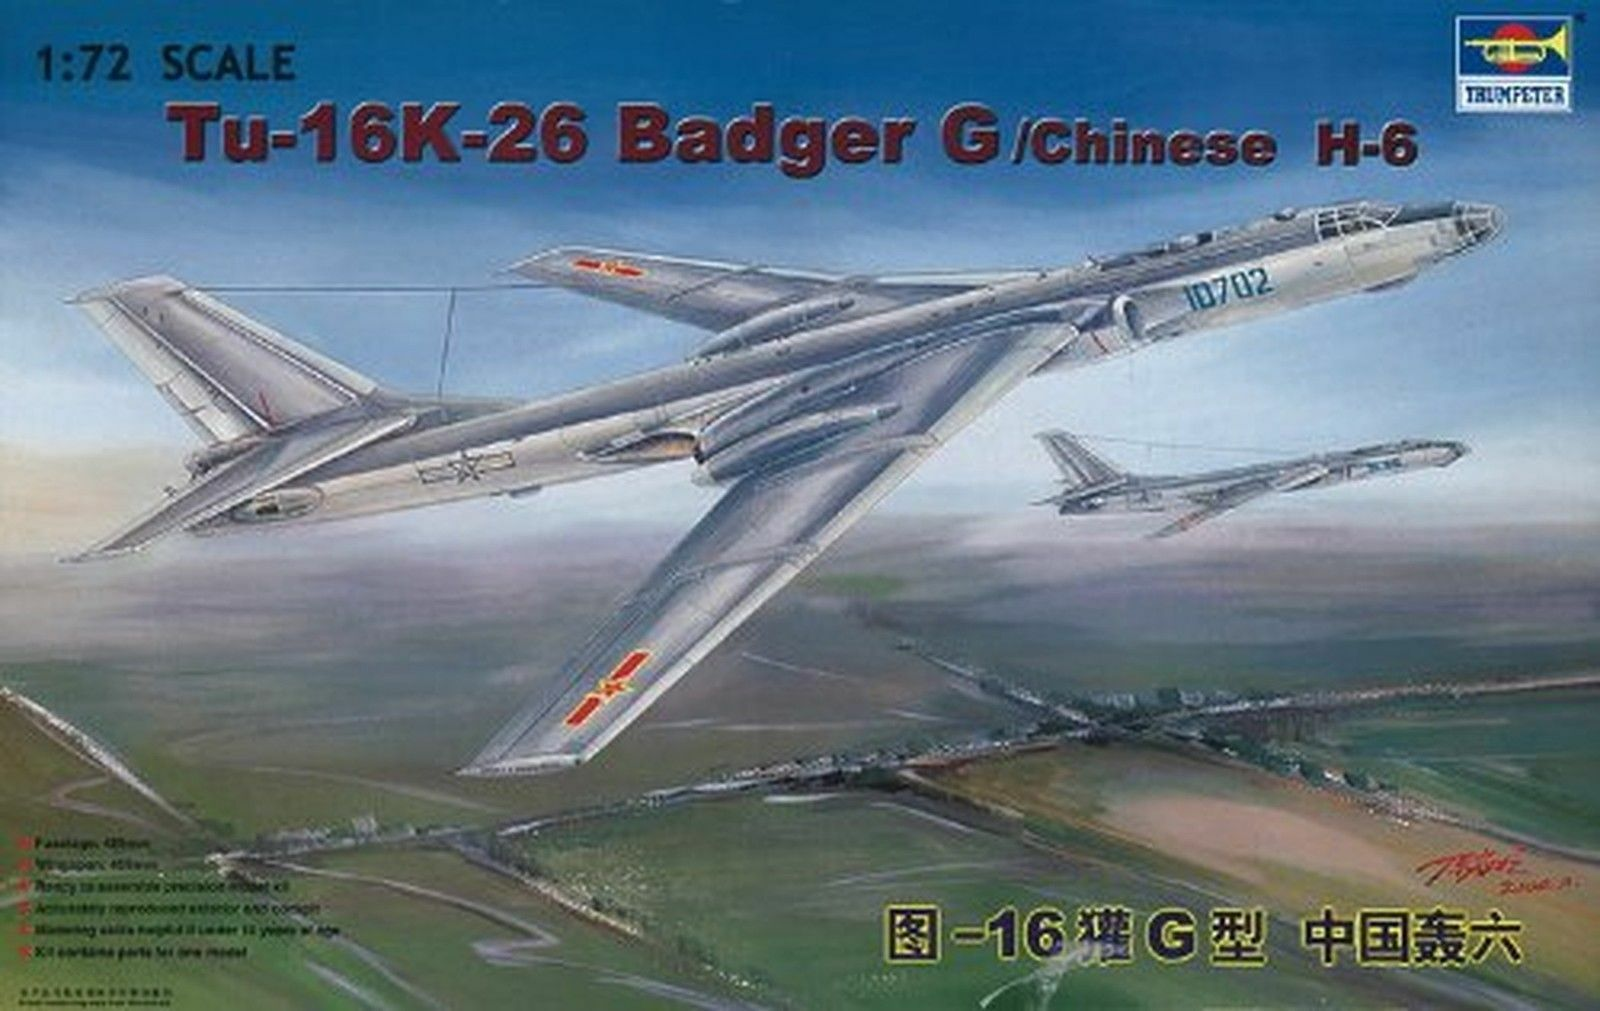 Trumpeter Jet Model Kit 01612 1 72 Russia Tu-16K-26 Badger Airplane H-6 Aircraft